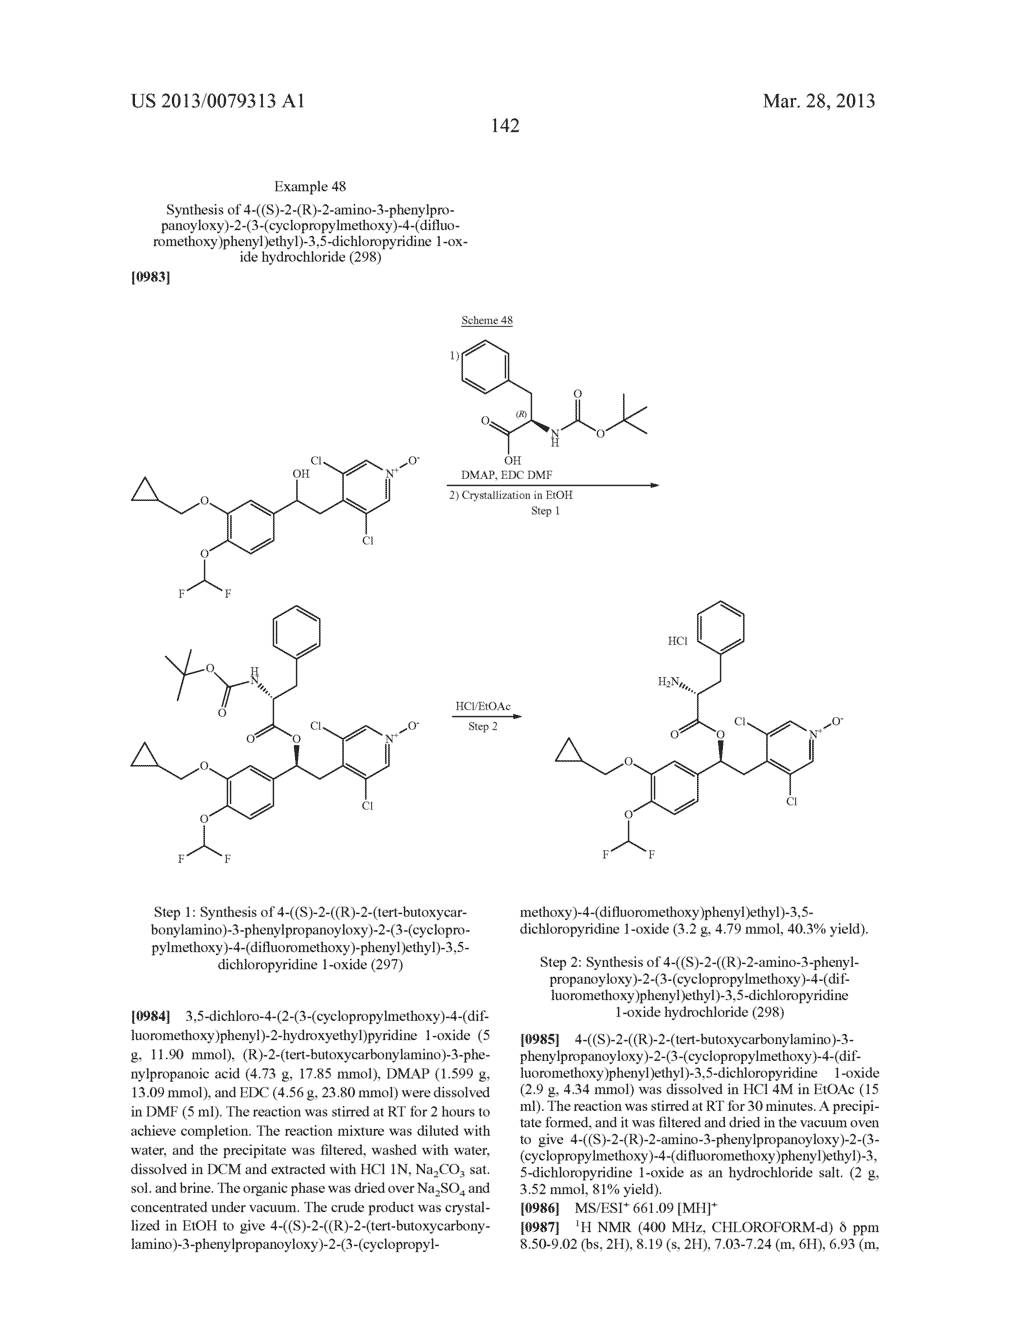 DERIVATIVES OF 1-PHENYL-2-PYRIDINYL ALKYL ALCOHOLS AS PHOSPHODIESTERASE     INHIBITORS - diagram, schematic, and image 143